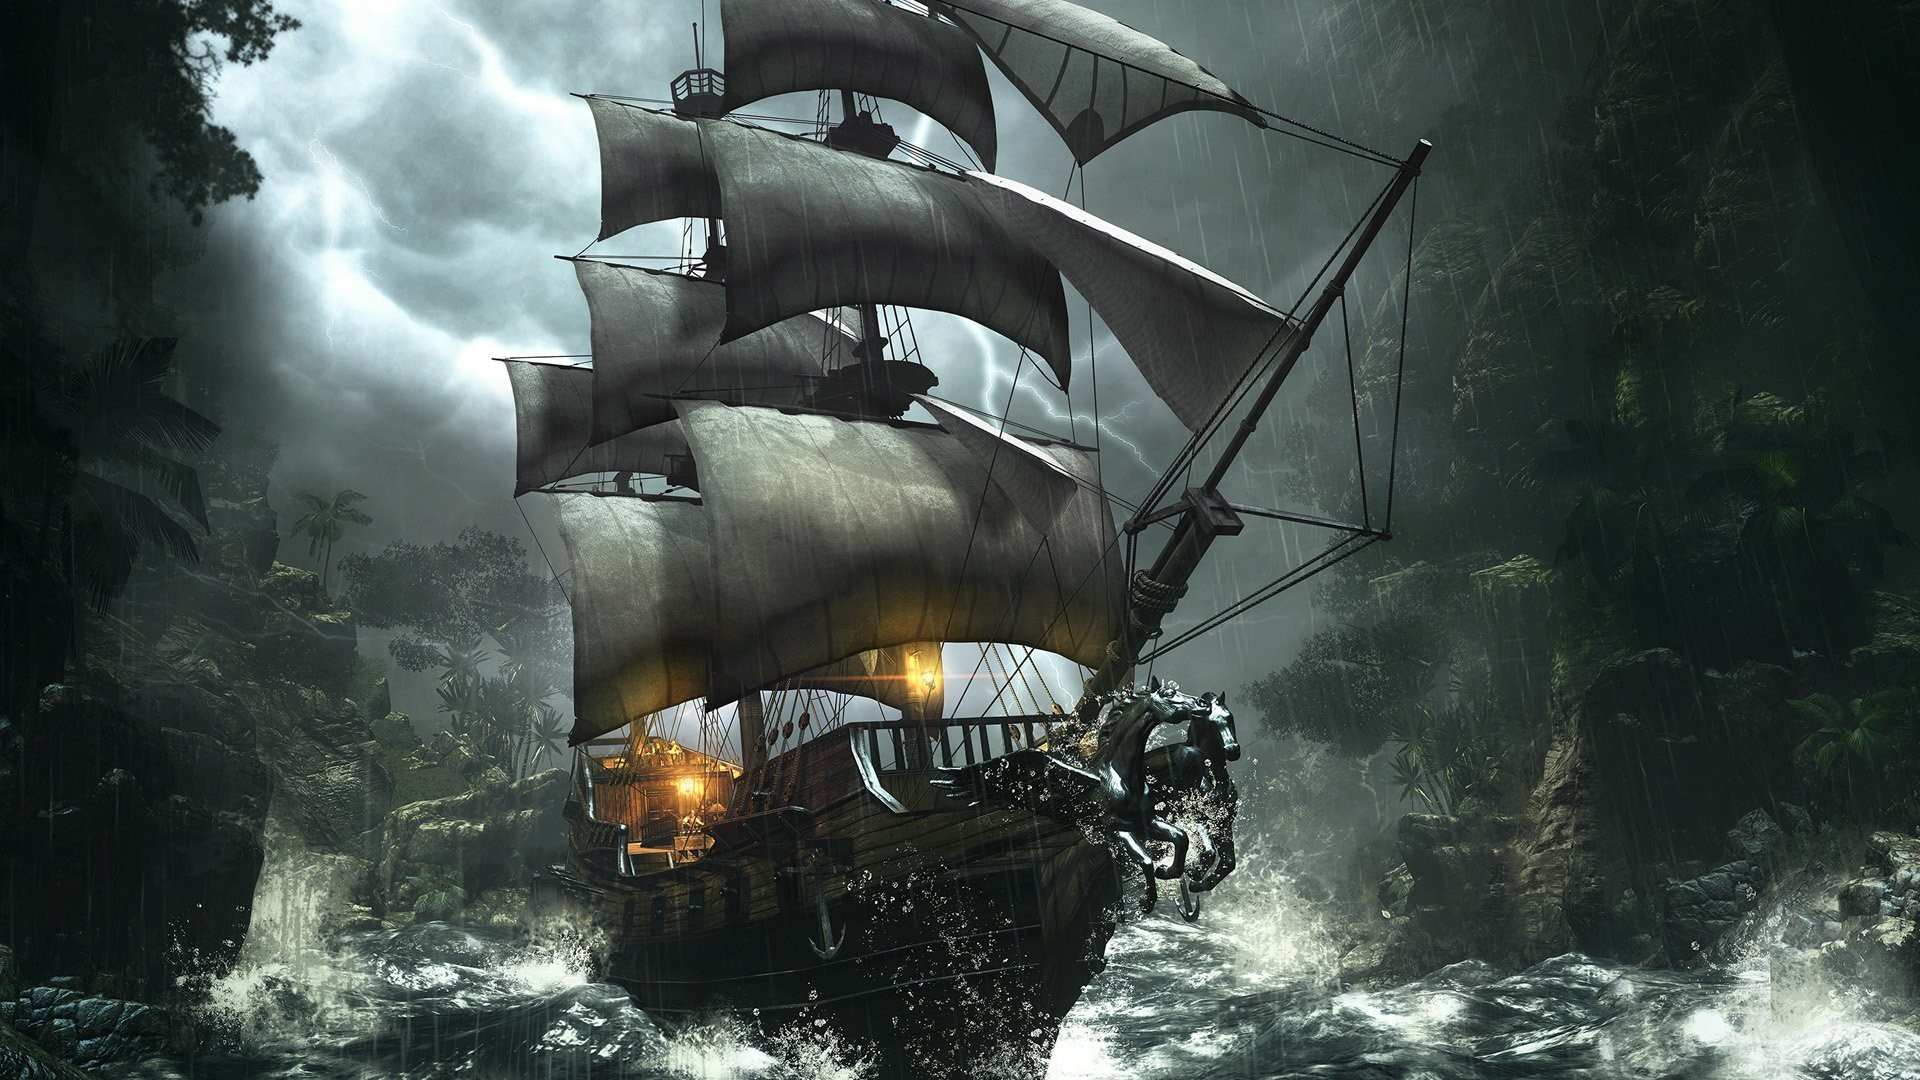 1920x1080 Pirate Ship Wallpaper High Definition #02c20  px 420.15 KB Other  Map. 1280x1024.